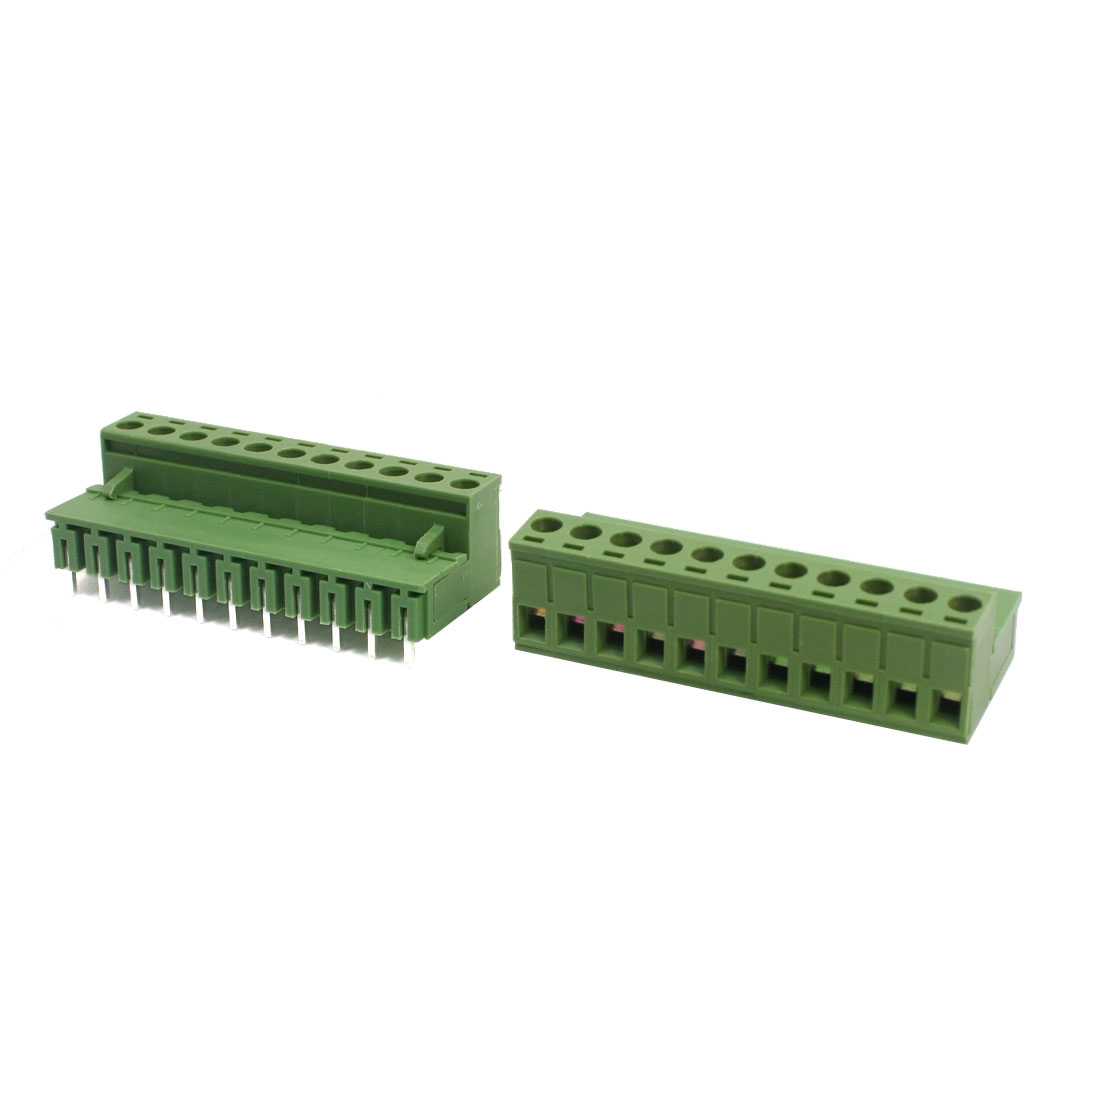 2Pcs 2EDG AC 300V 10A 5.08mm Pitch 12-24AWG 11 Pole Right Angle Pluggable in PCB Mount Plastic Screw Terminal Barrier Block Connector